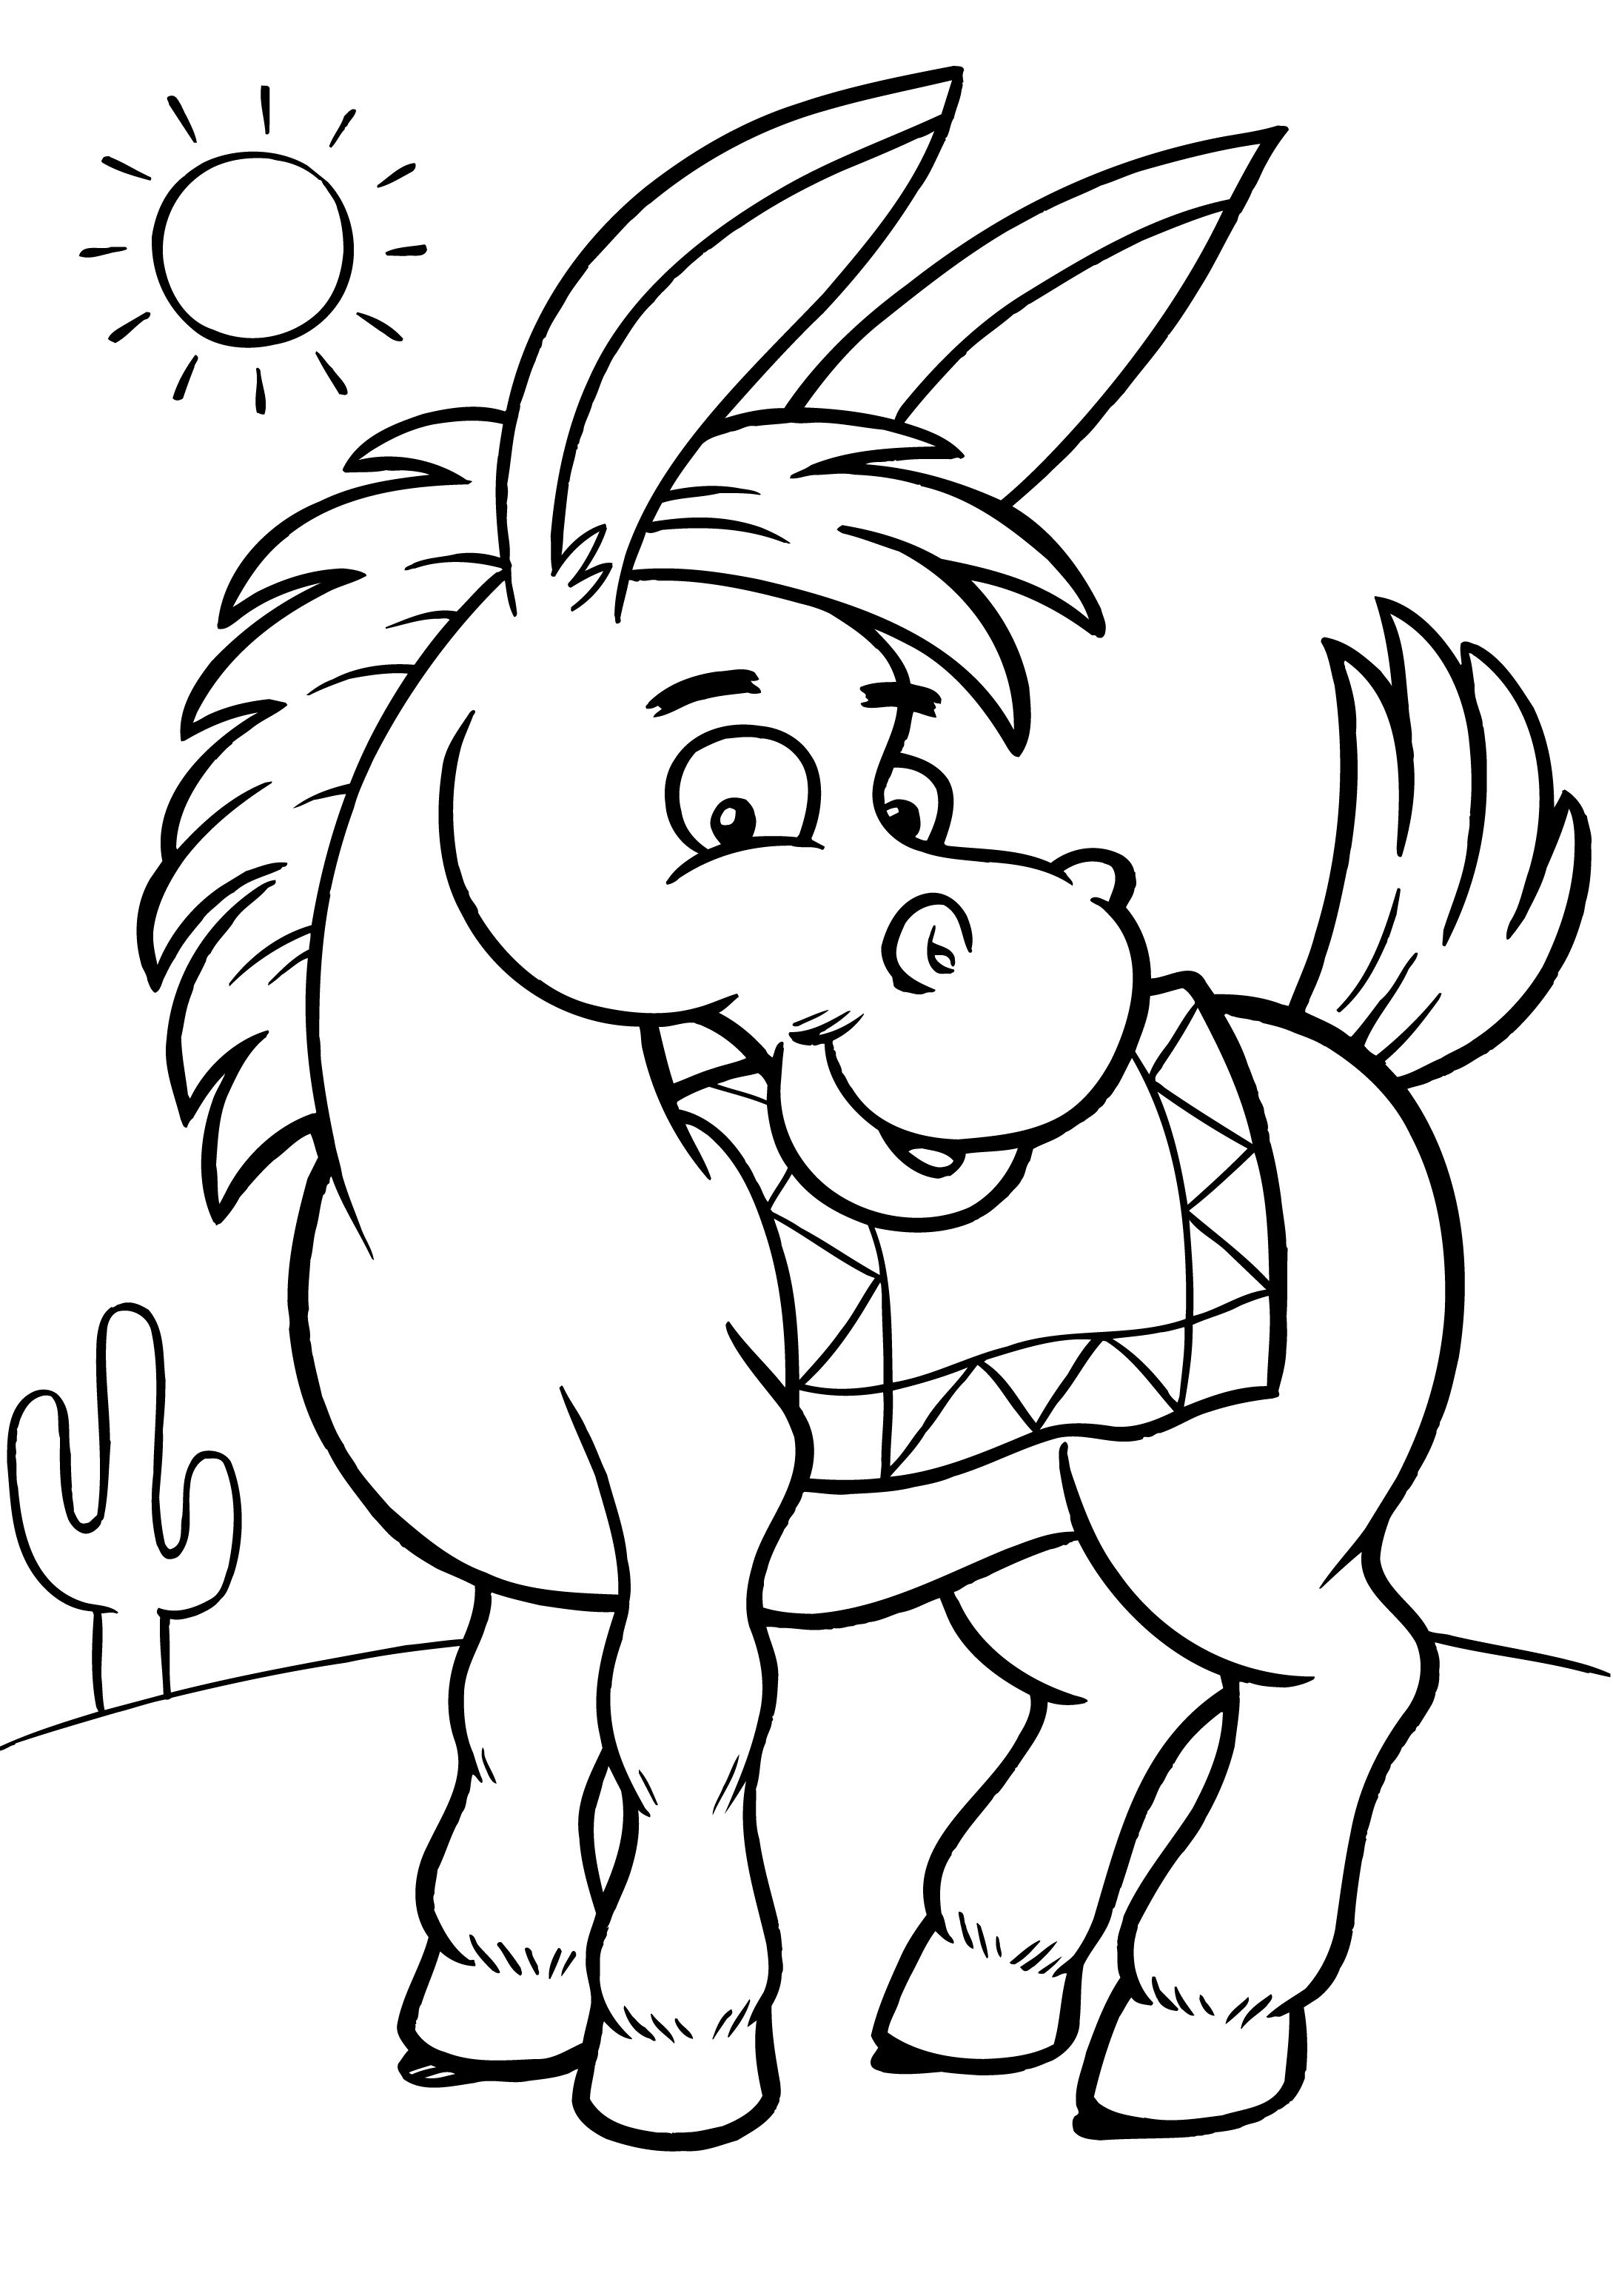 Kids Free Coloring Sheets  Free Printable Donkey Coloring Pages For Kids